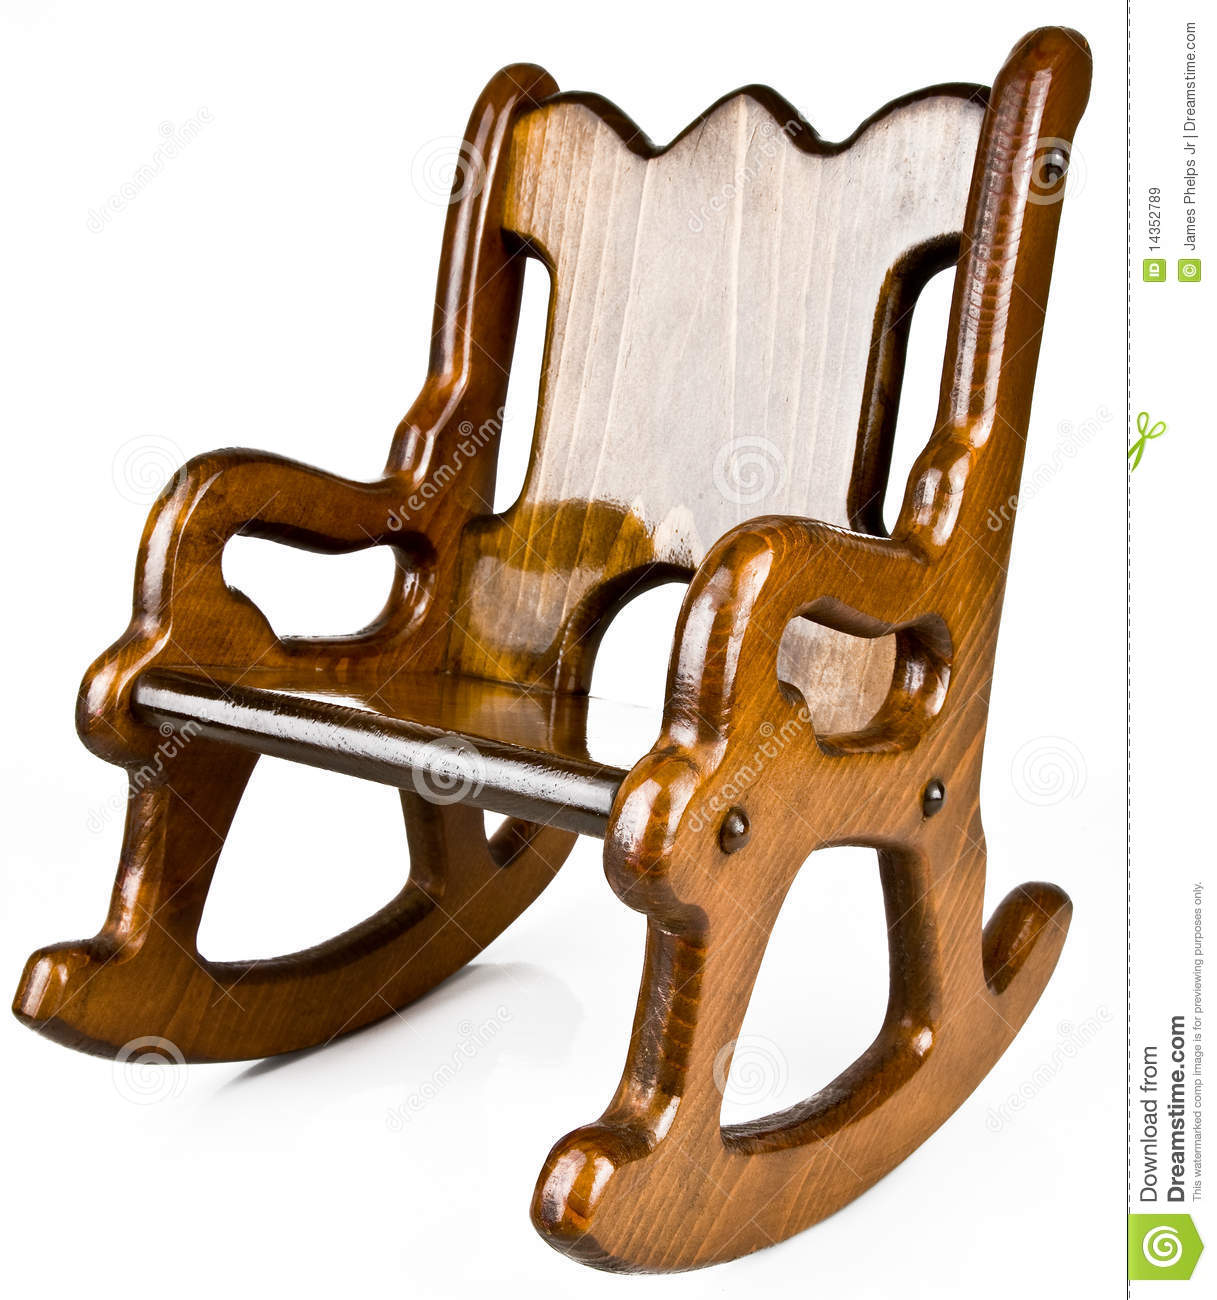 Childs Wooden Rocking Chair Plans Plans DIY Free Download How To Make . Full resolution‎  snapshot, nominally Width 1217 Height 1300 pixels, snapshot with #6D3D0E.